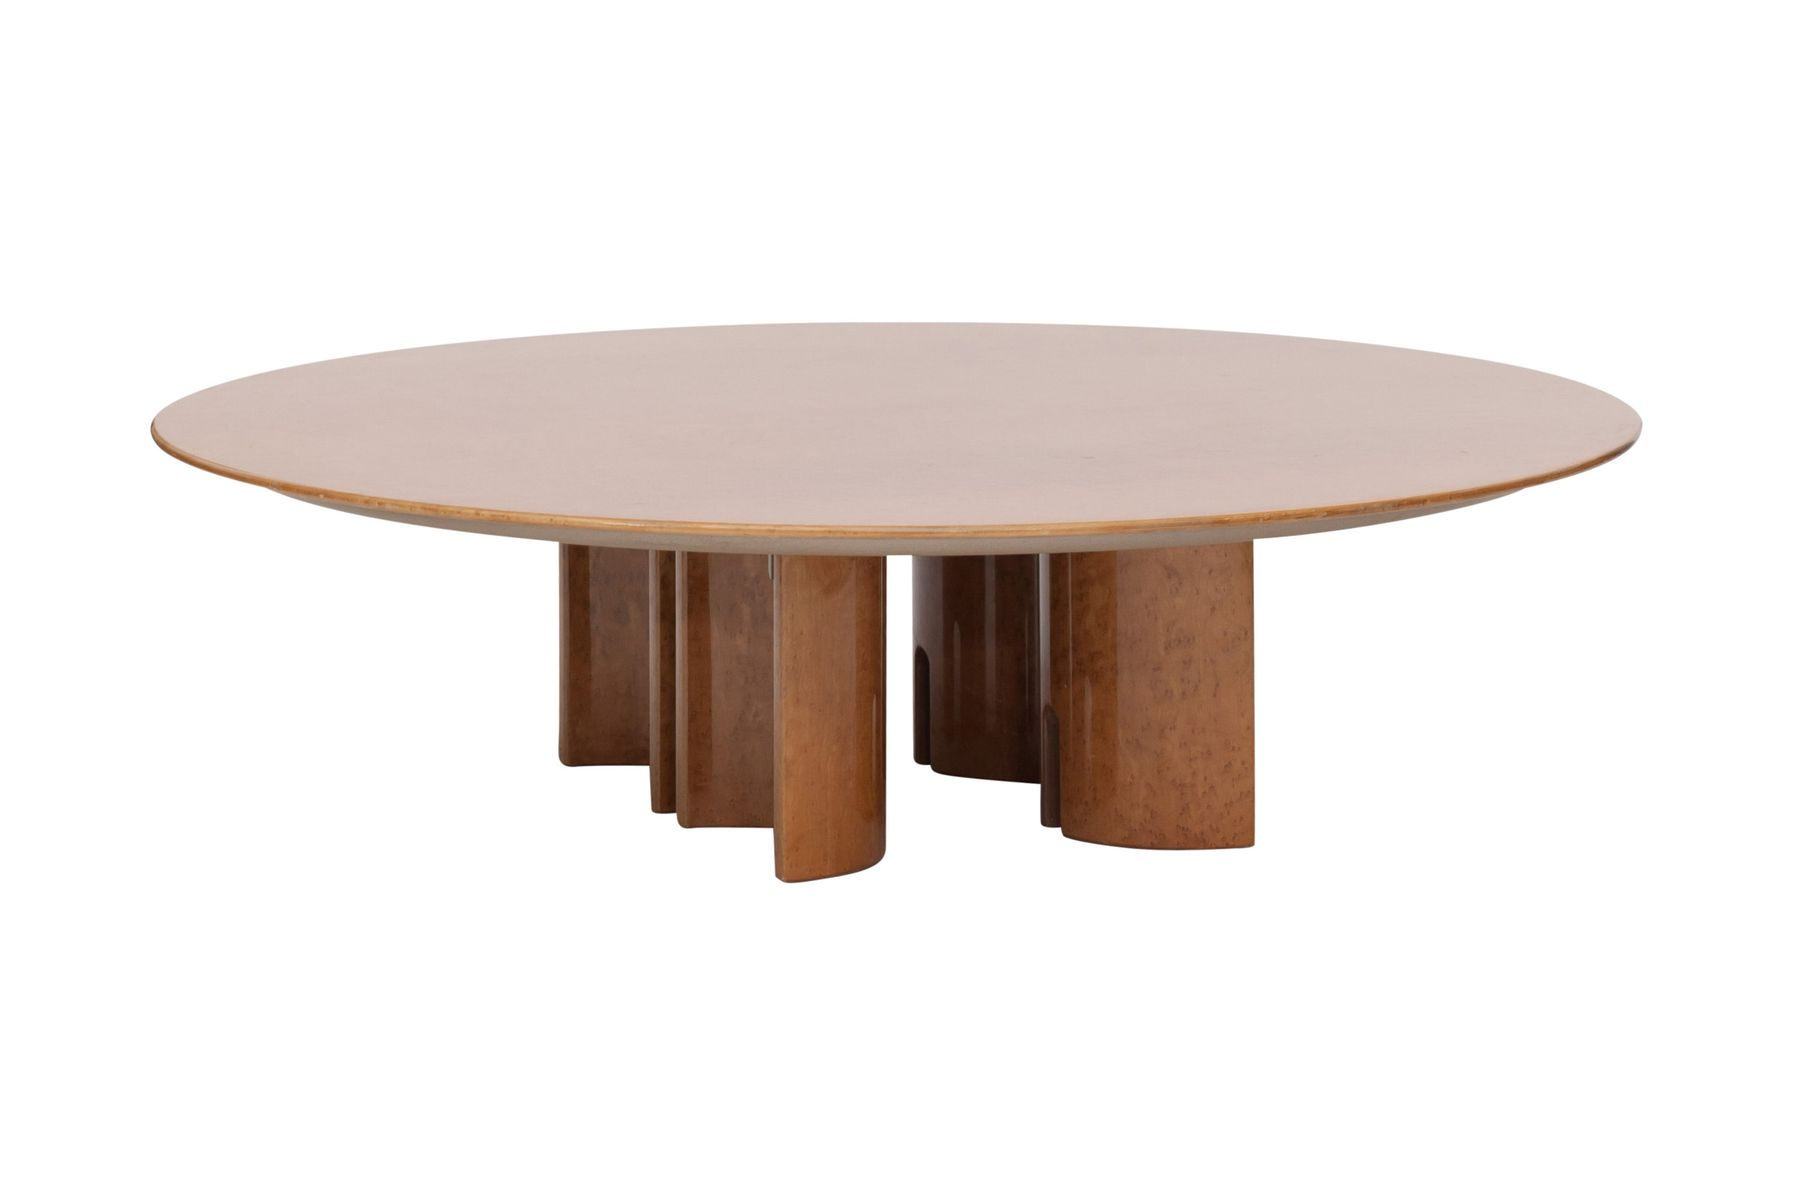 Round High Gloss Burl Coffee Table By Giovanni Offredi For Saporiti 1980s For Sale At Pamono